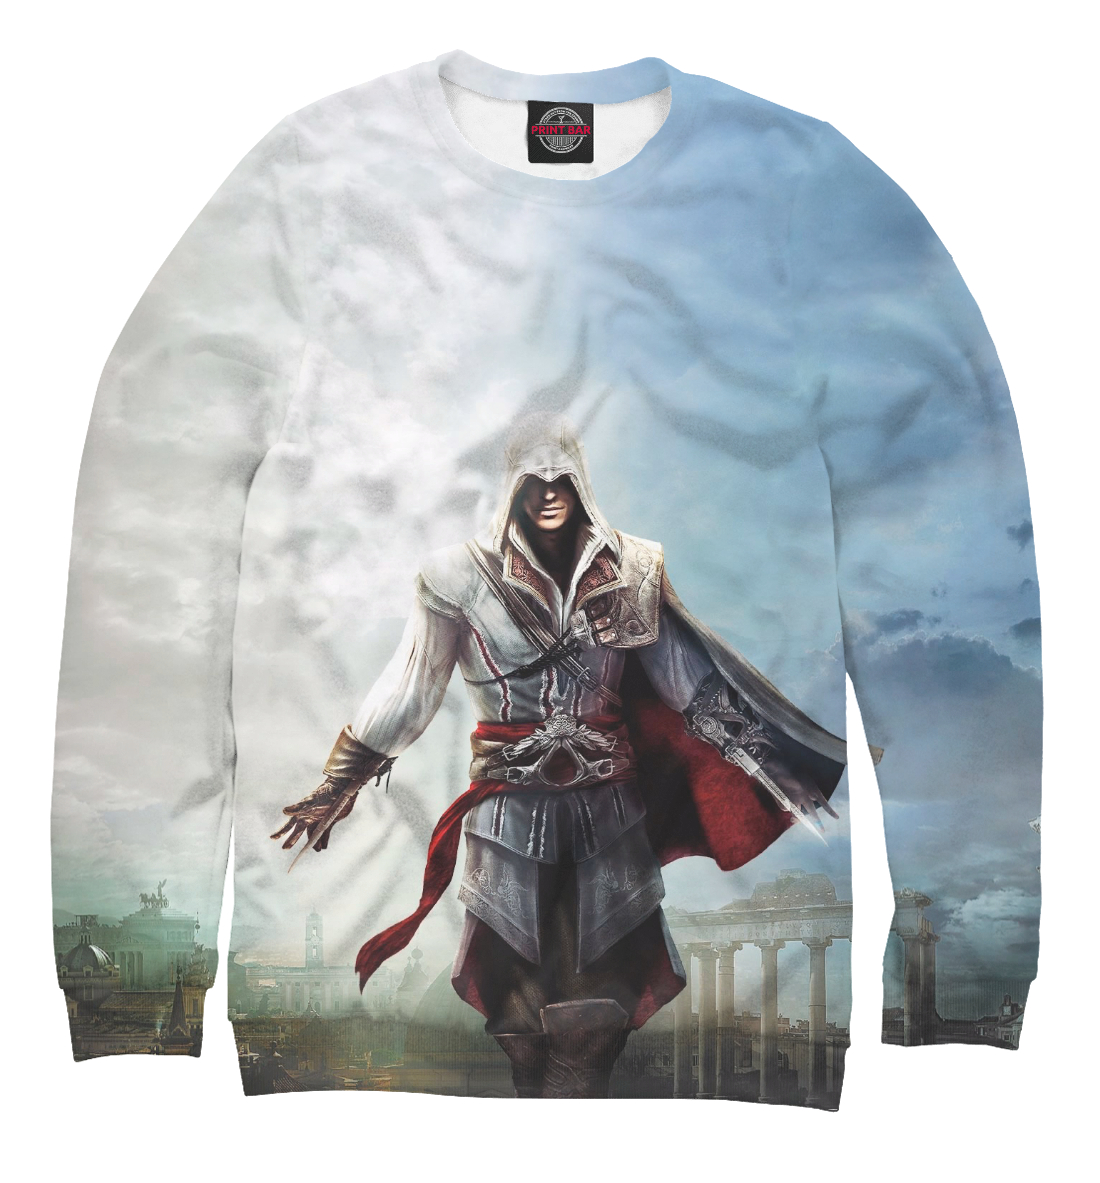 Купить Assassin's Creed Ezio Collection, Printbar, Свитшоты, RPG-324153-swi-2